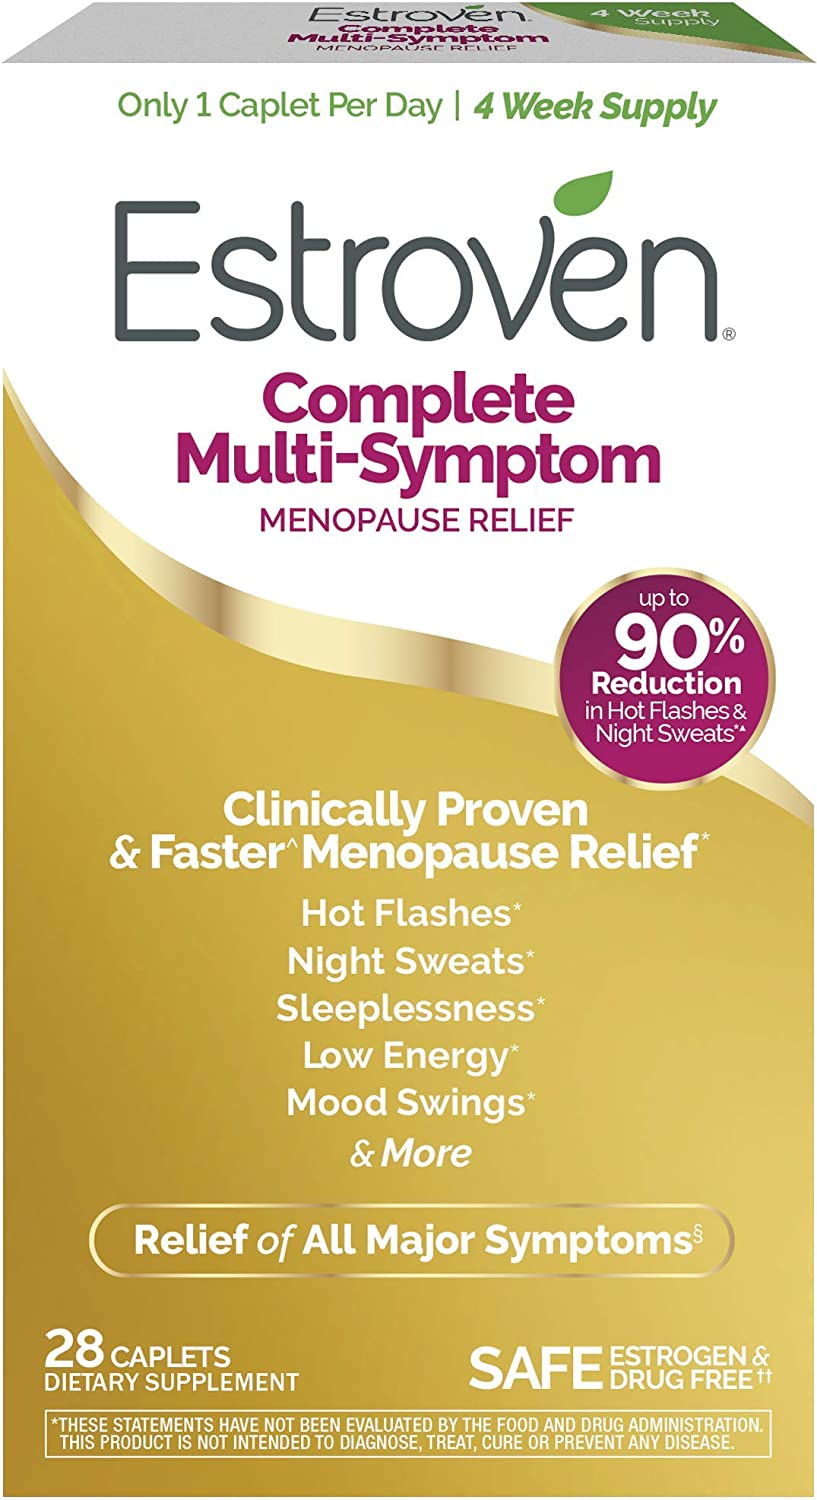 Estroven Complete Menopause Relief | All-In-One Menopause Relief